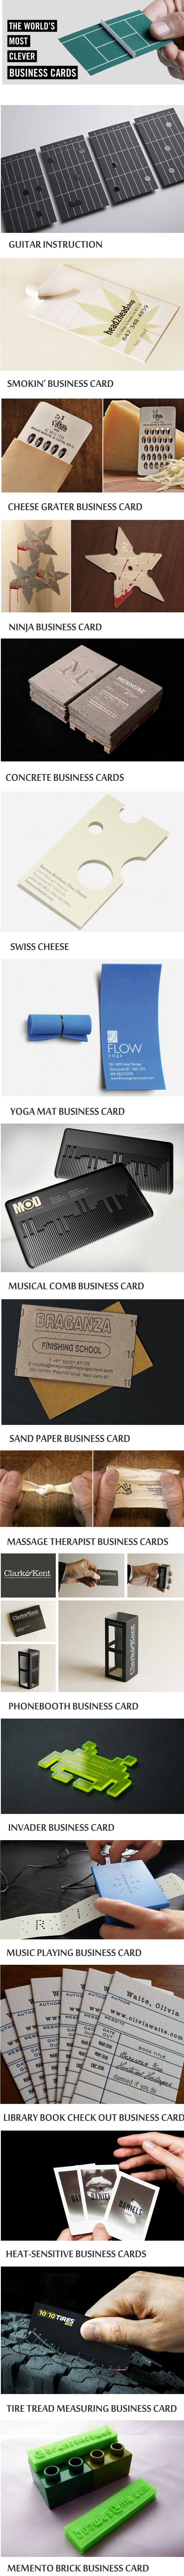 These are The World's Most Clever Business Cards.